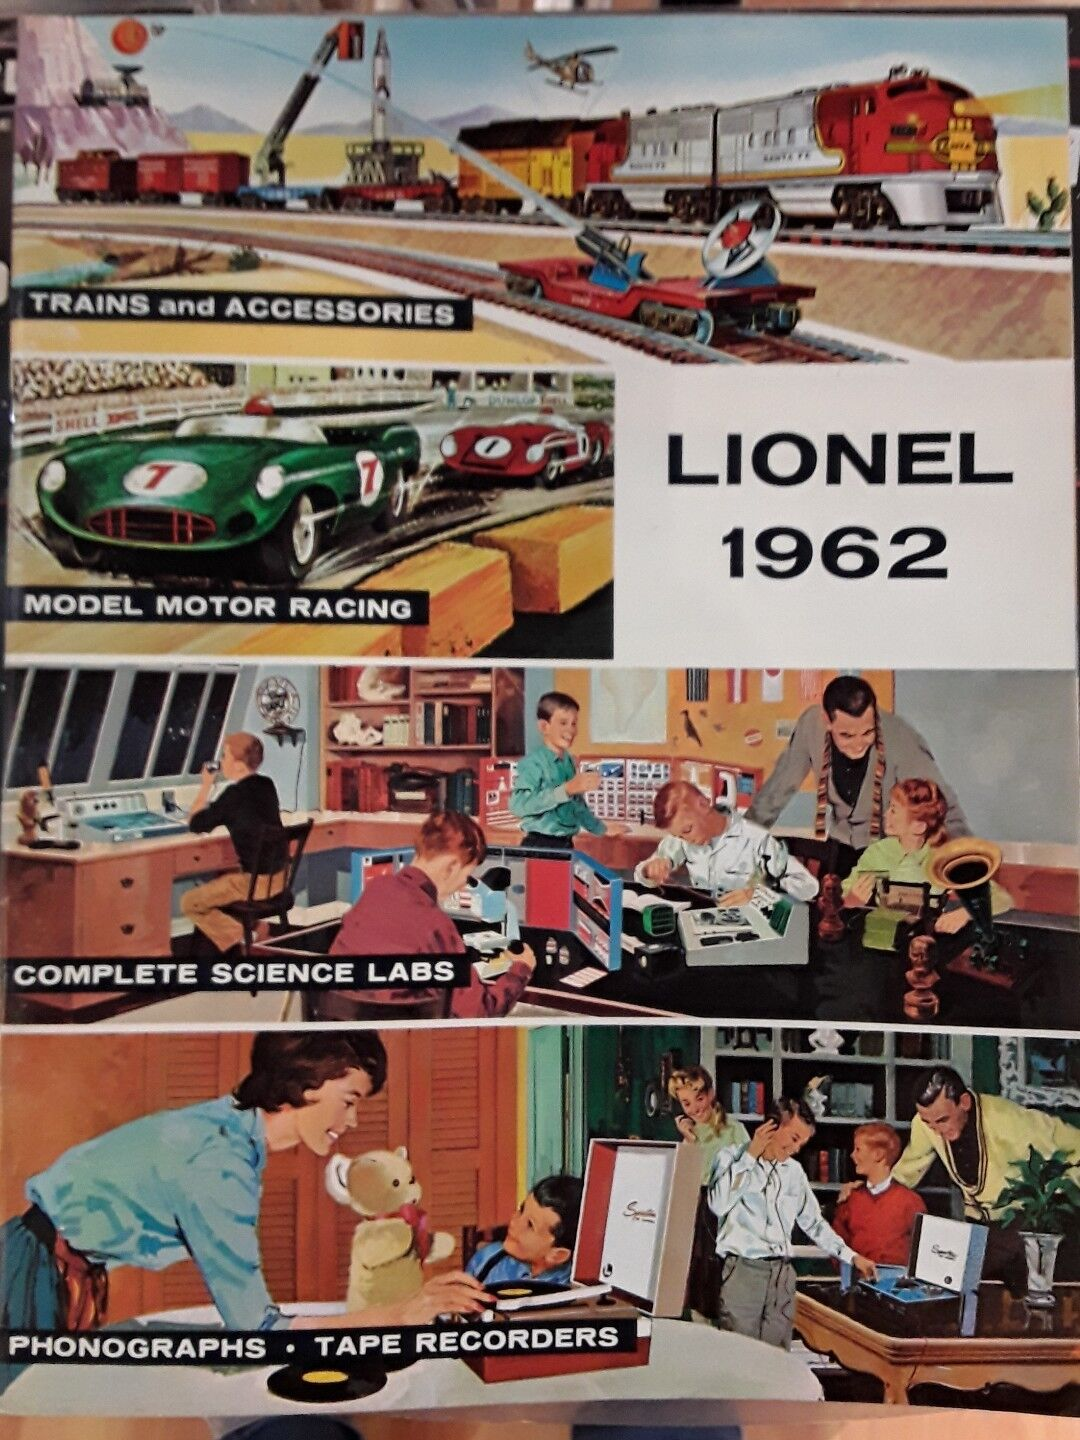 Lionel Trains Catalog 1962 full color good condition Vintage